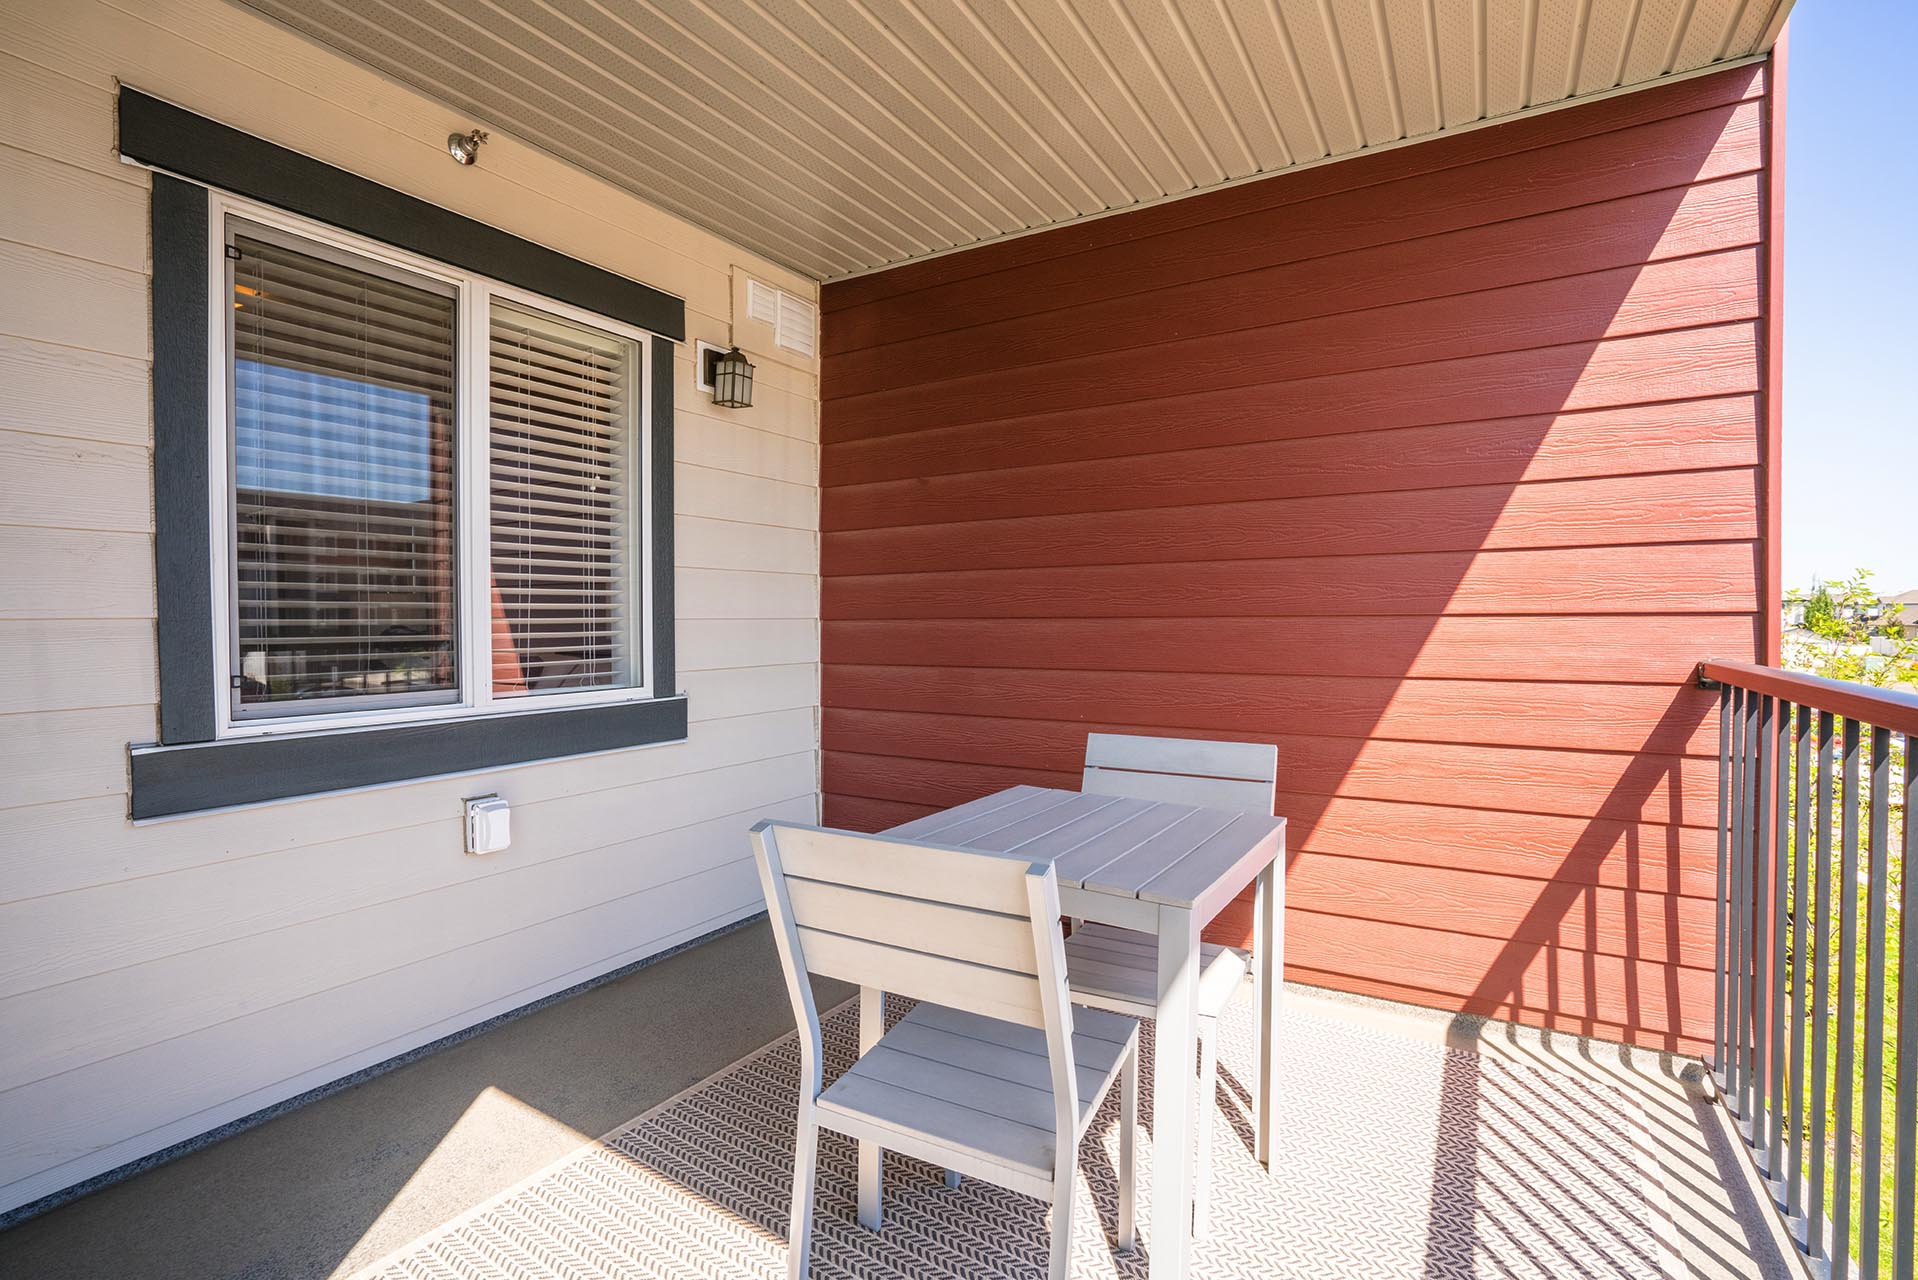 930 156 Street in Edmonton, AB is Now Available